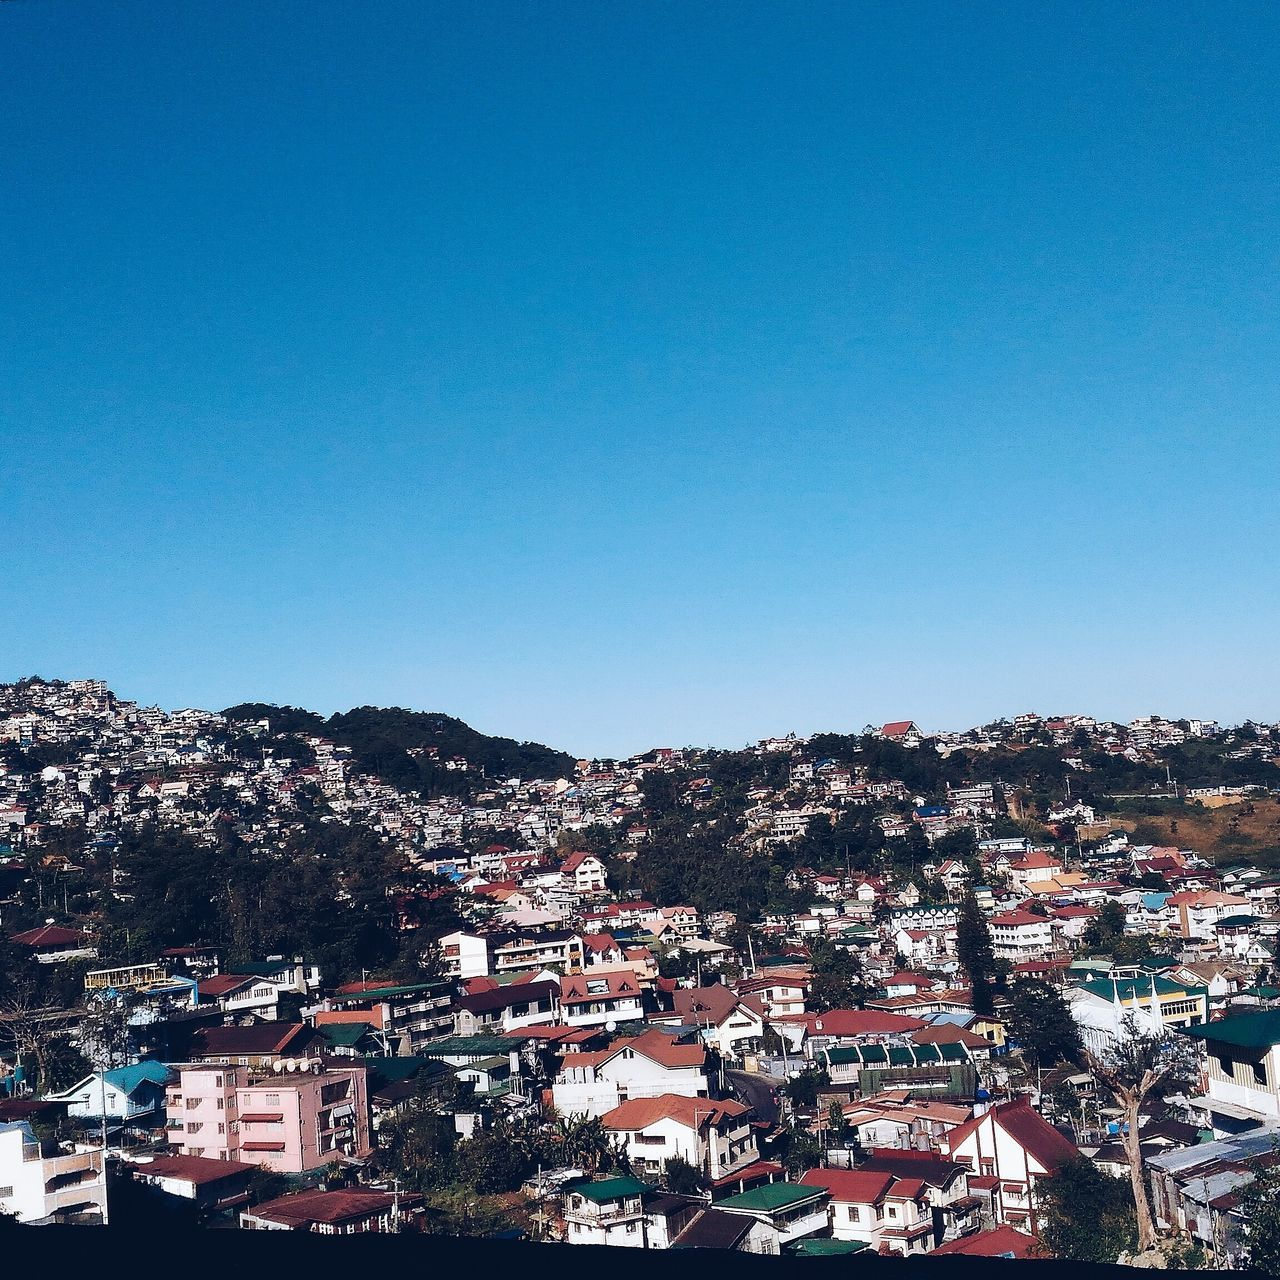 architecture, building exterior, built structure, clear sky, house, copy space, residential building, blue, day, no people, outdoors, high angle view, town, sunlight, tree, mountain, nature, cityscape, city, sky